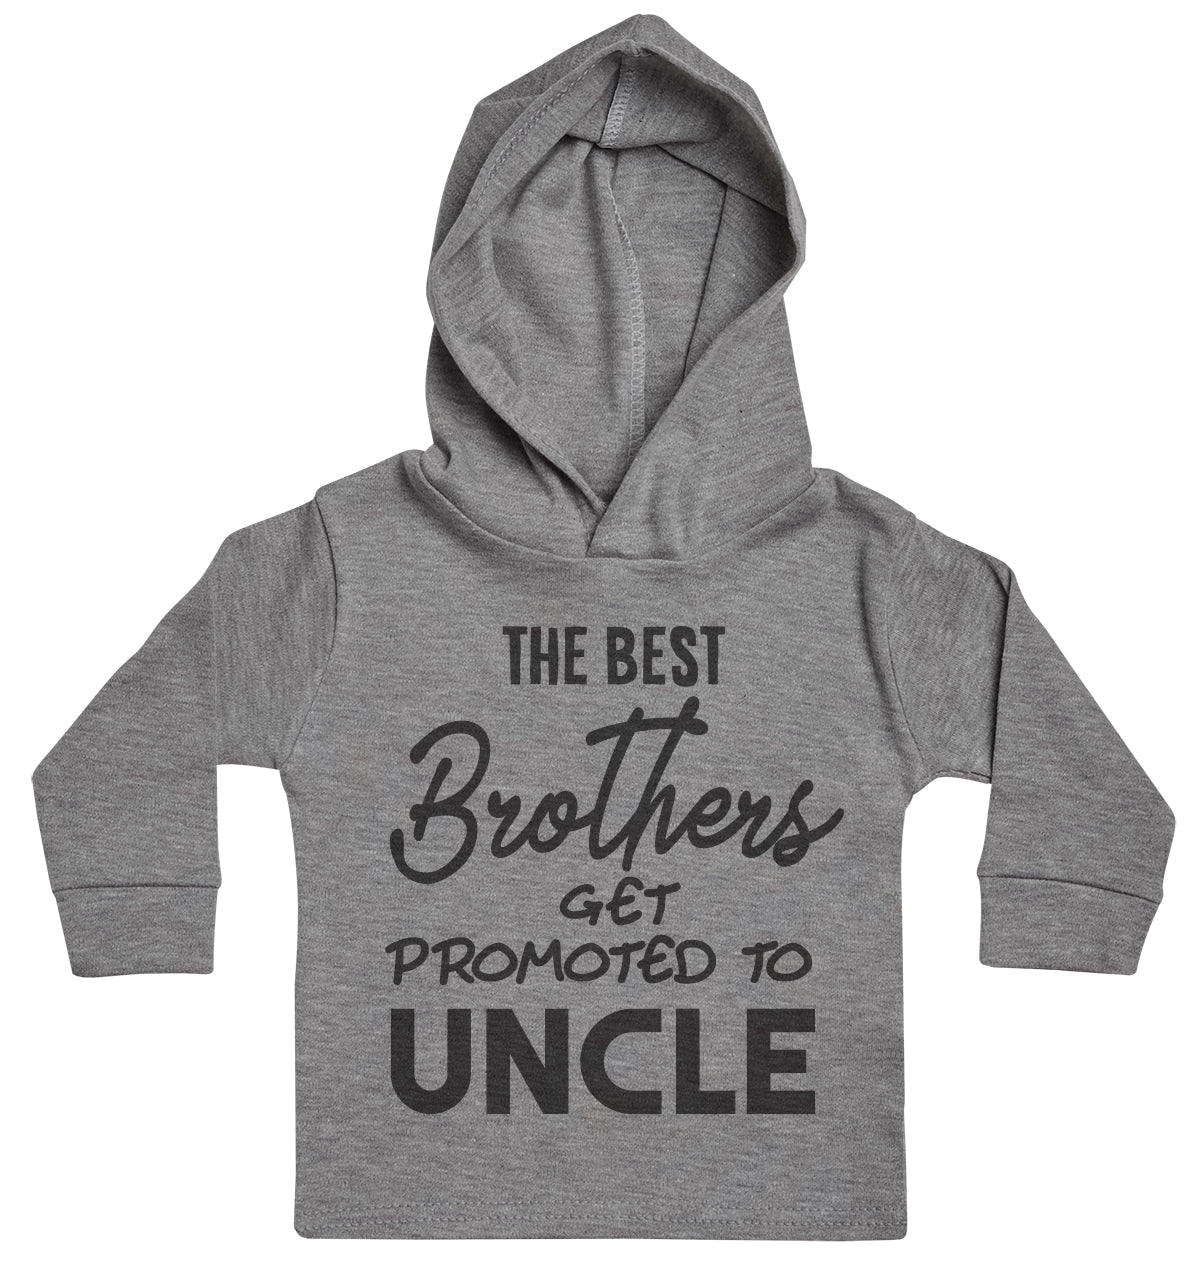 The Best Brothers Get Promoted To Uncle Baby Hoody